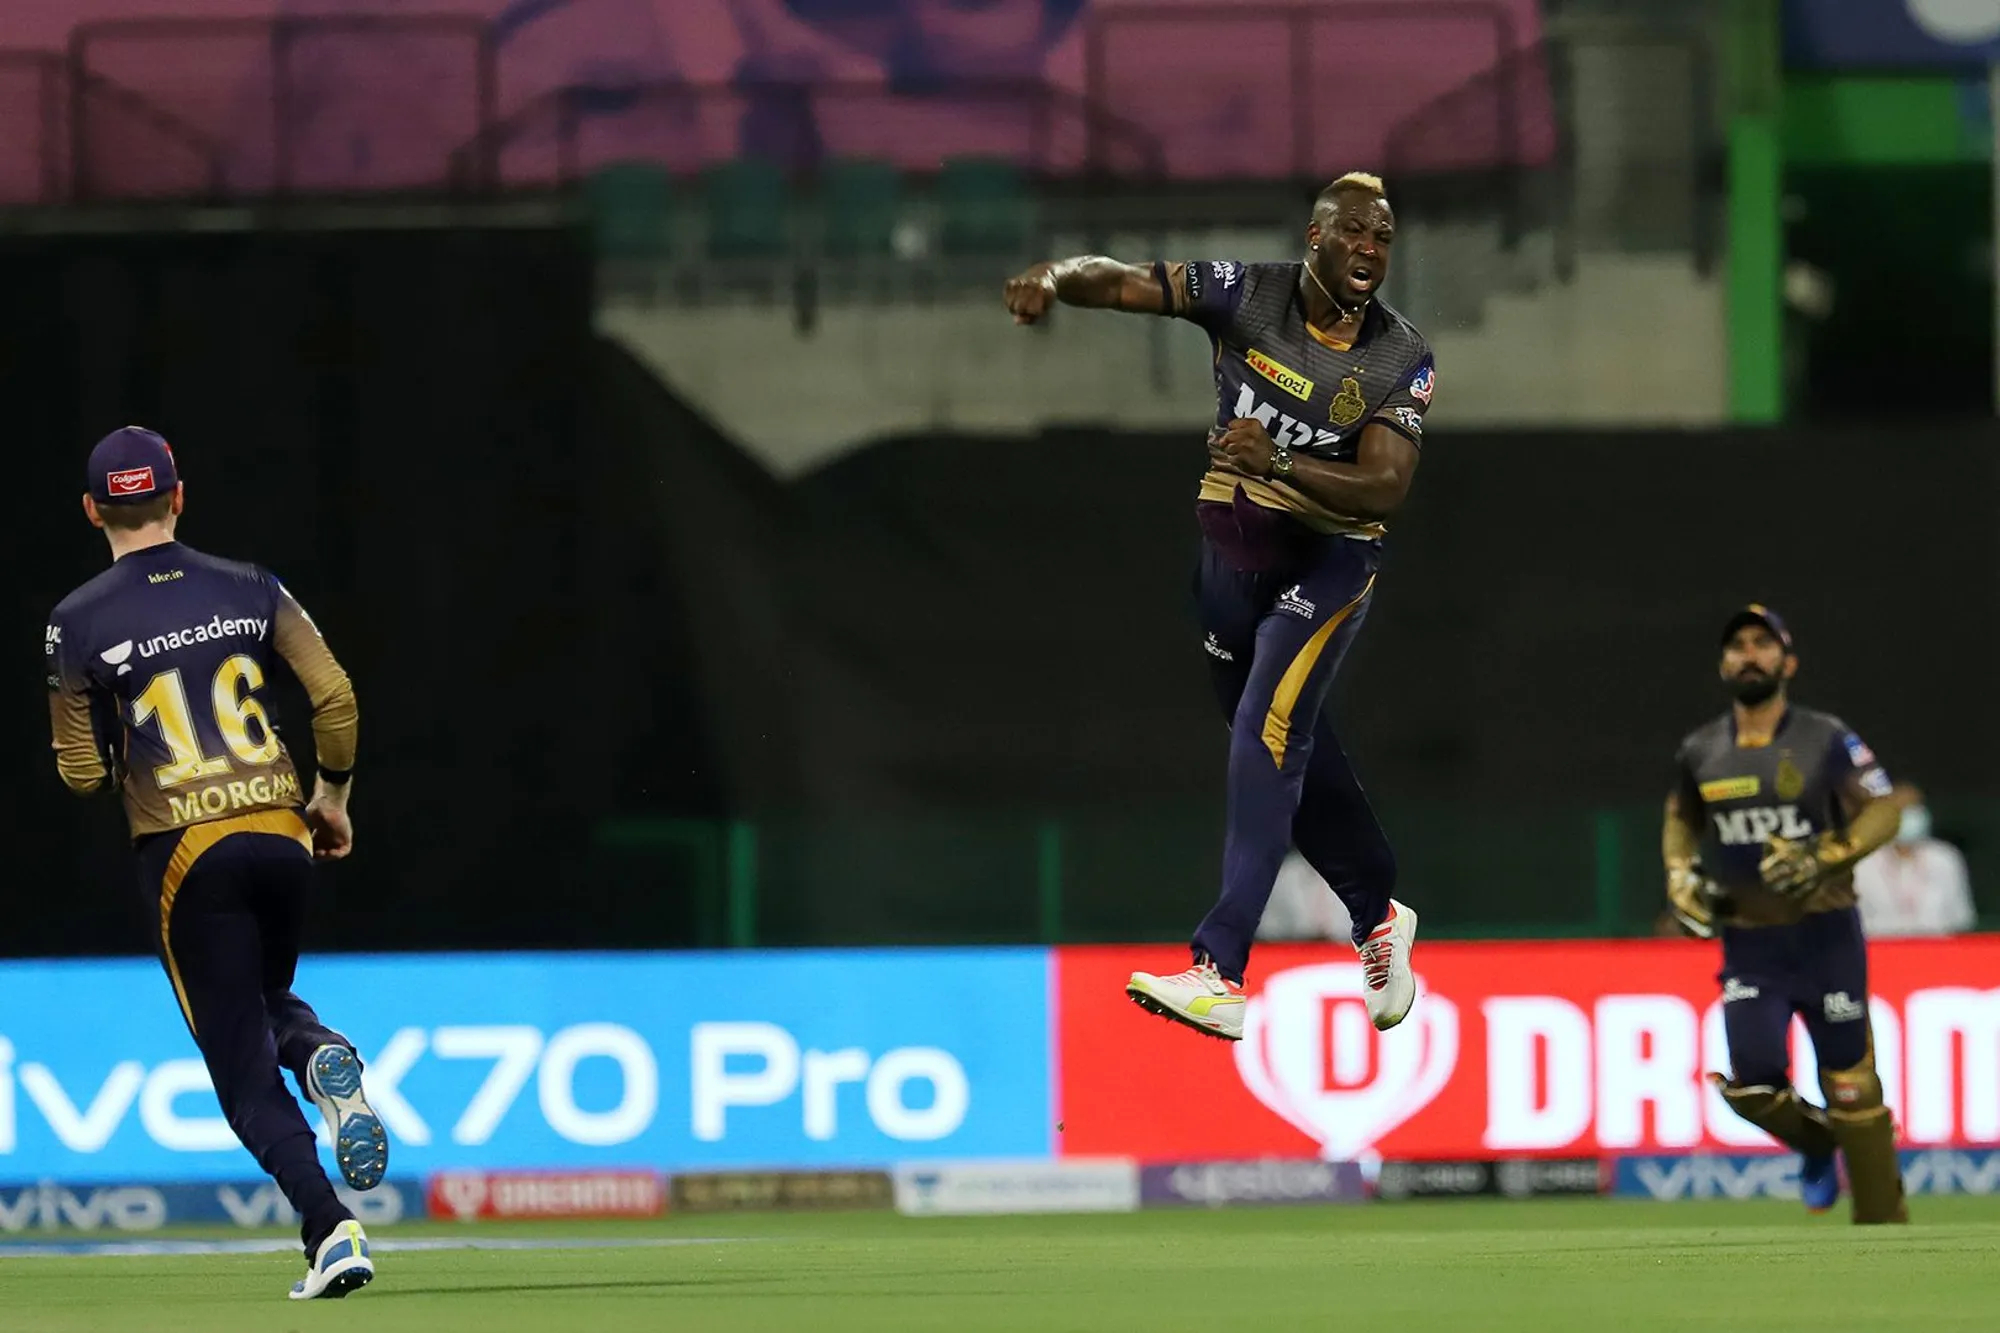 Andre Russell picked 3/9 including wicket of AB de Villiers for a duck   IPL-BCCI